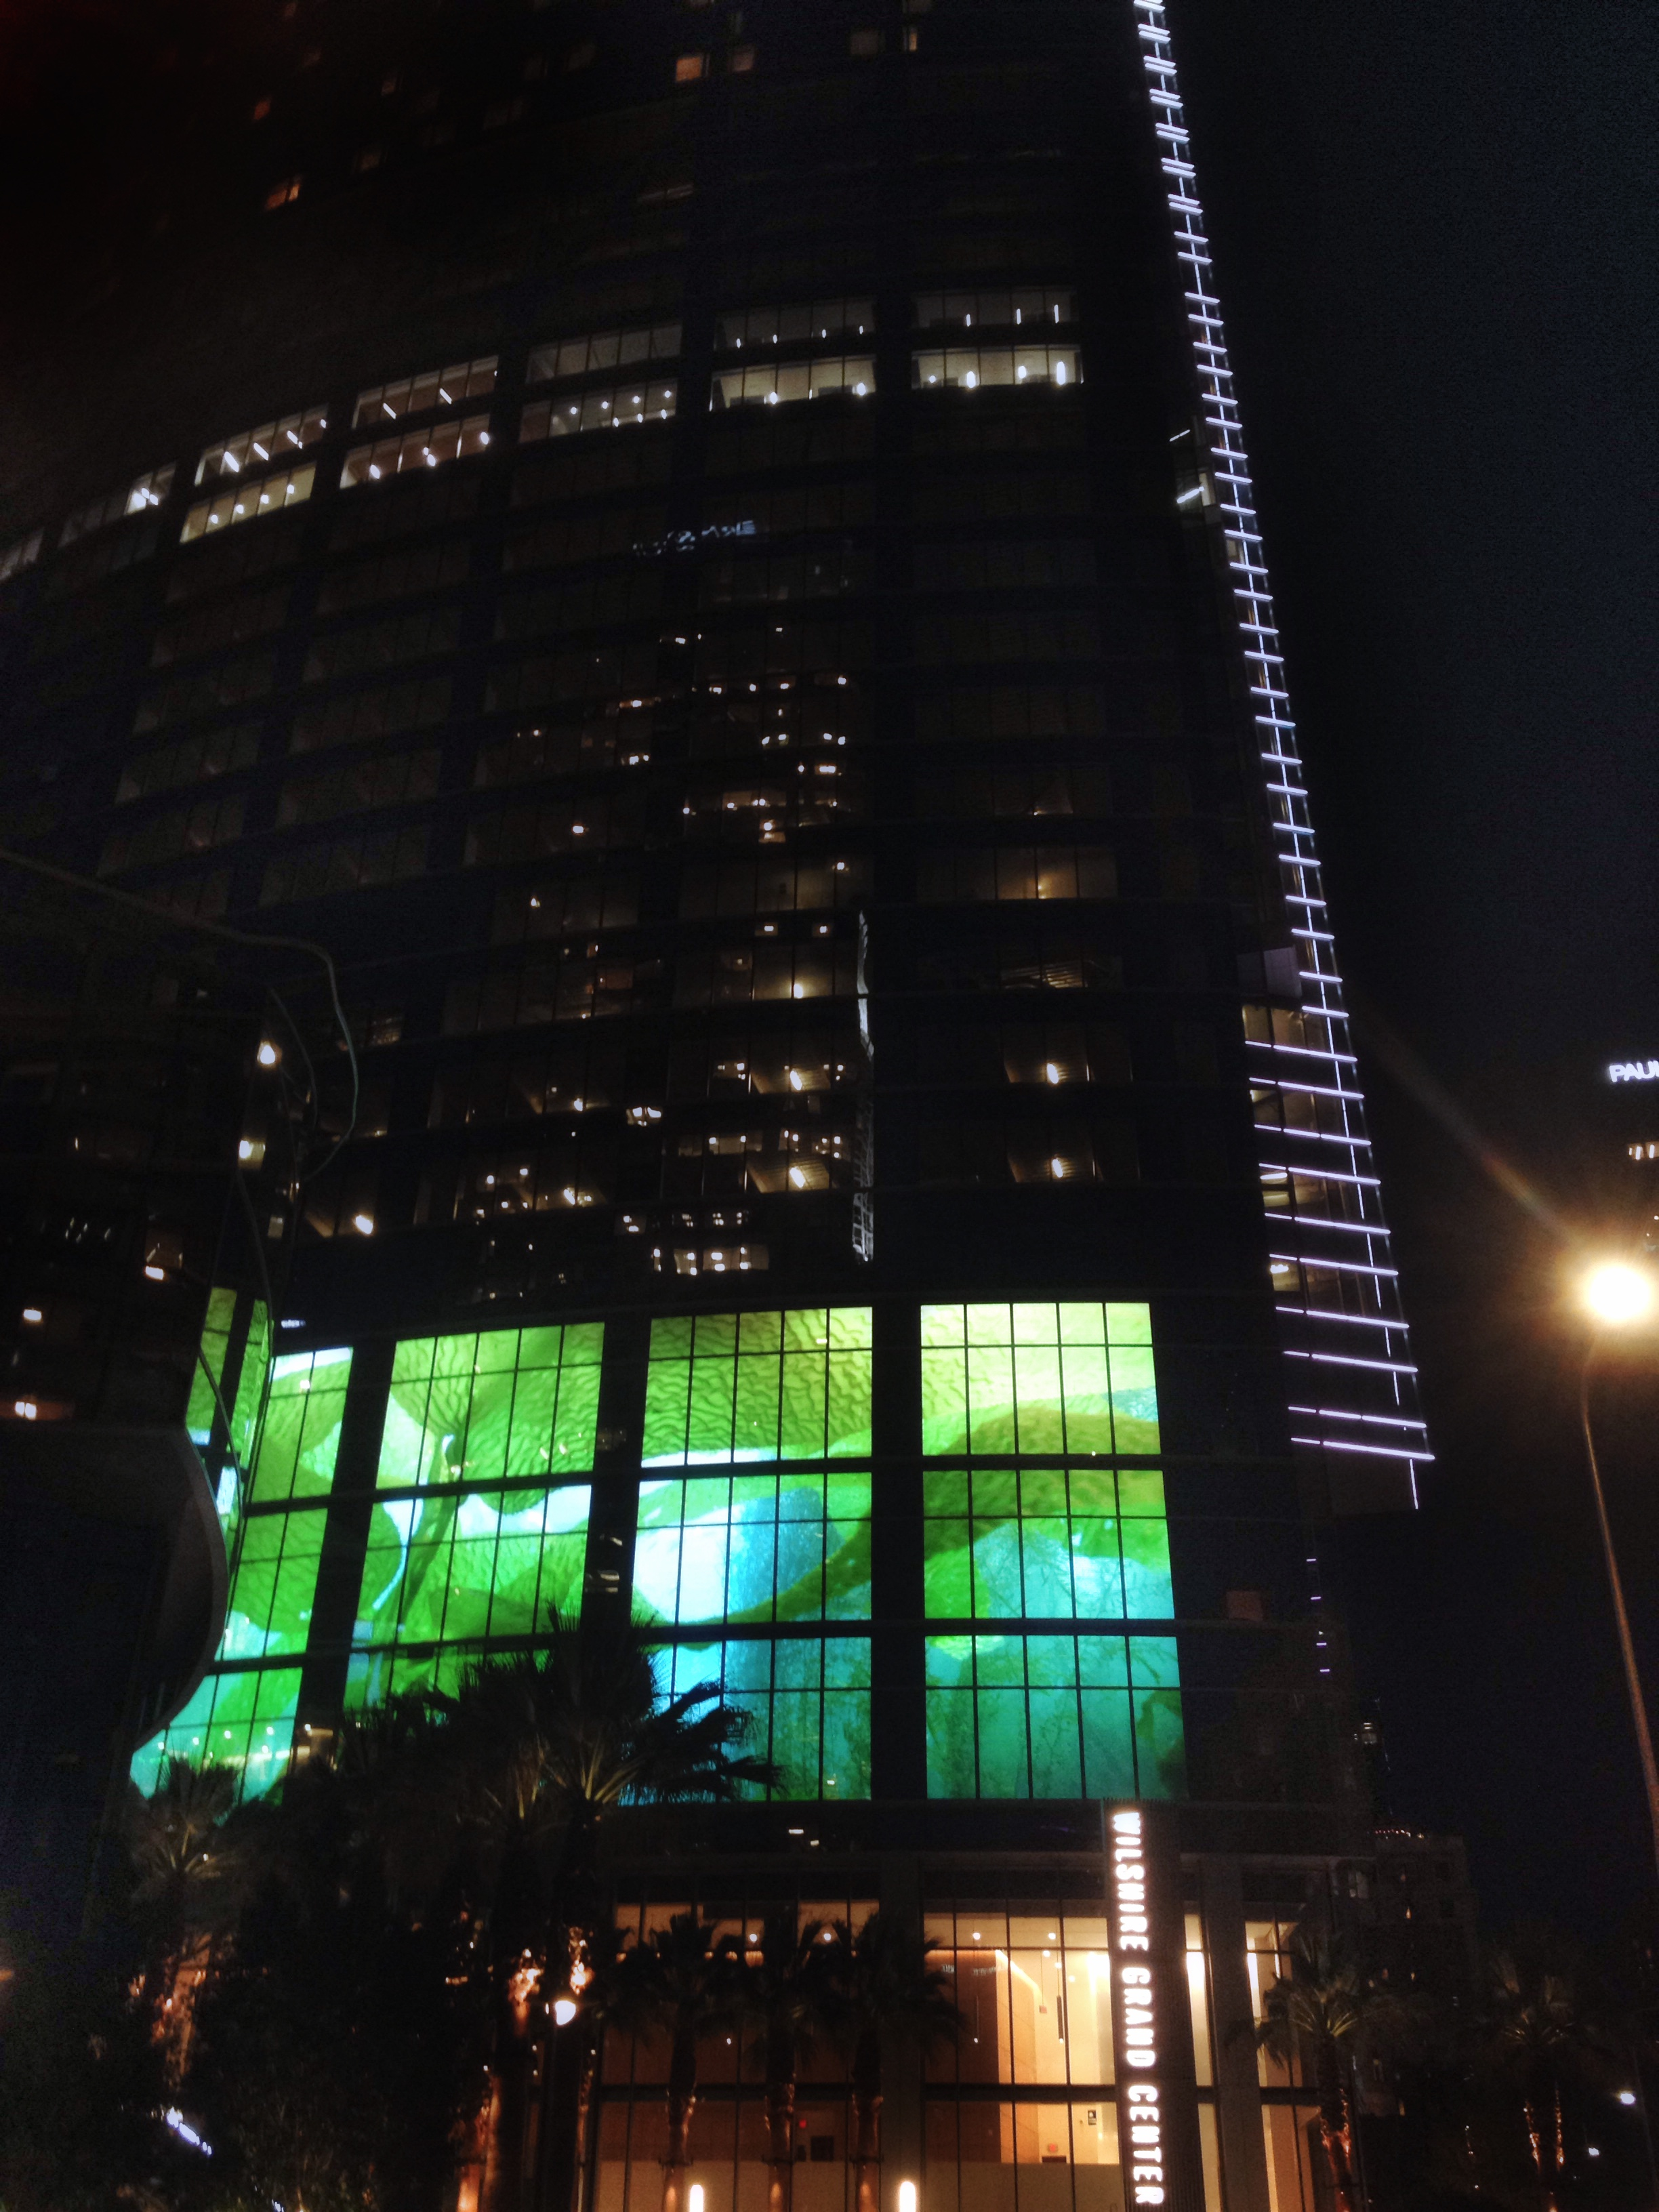 Wilshire Grand - Designer for the StandardVision award winning lighting installations on Wilshire Grand including the linear narrative lighting, courtyard media screen as well as digitally programmable tenant signage situated within the building crown